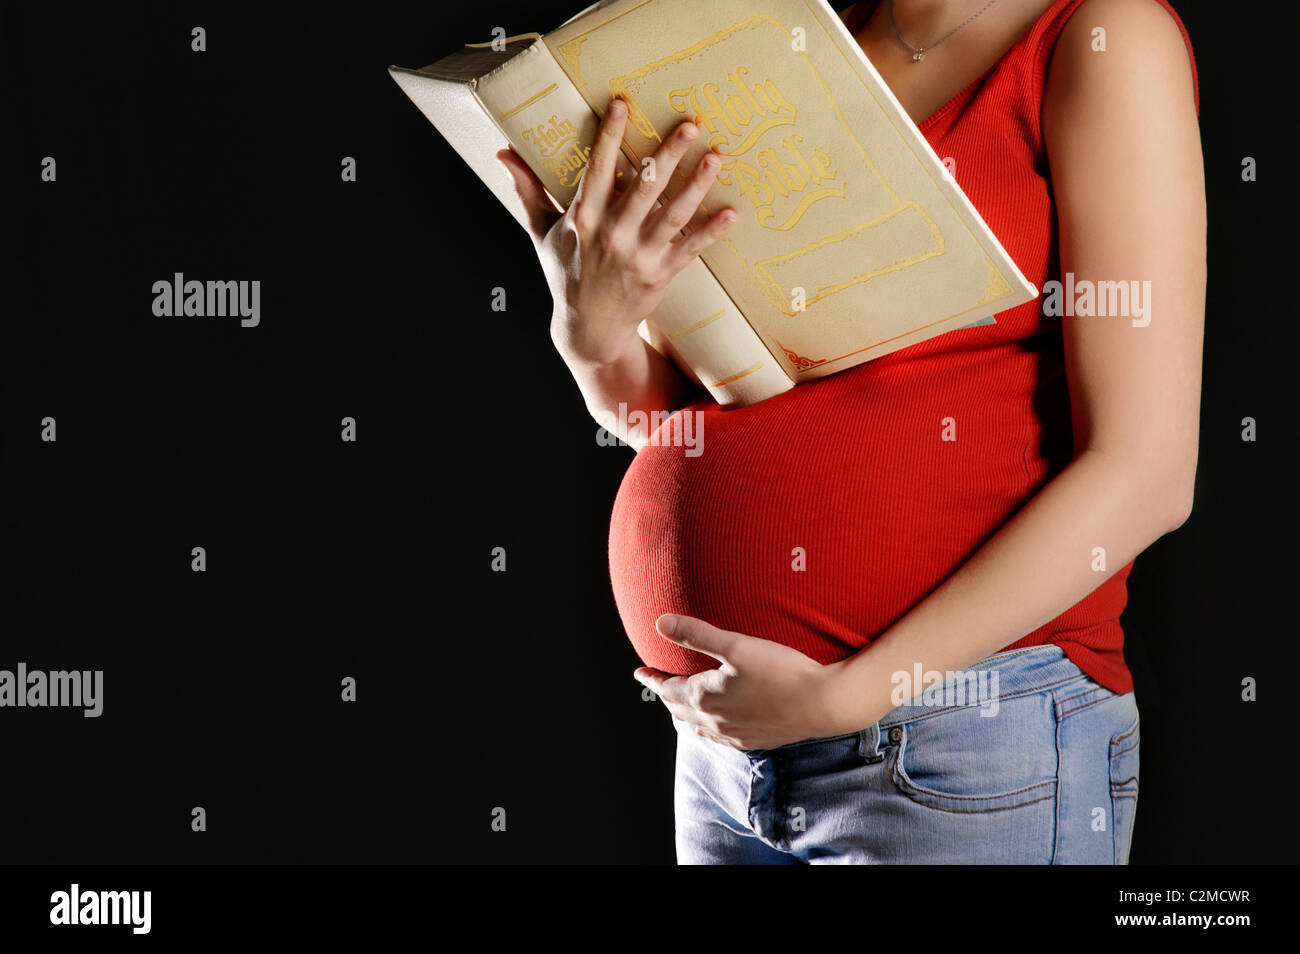 Pregnant Woman Reading A Bible - Stock Image